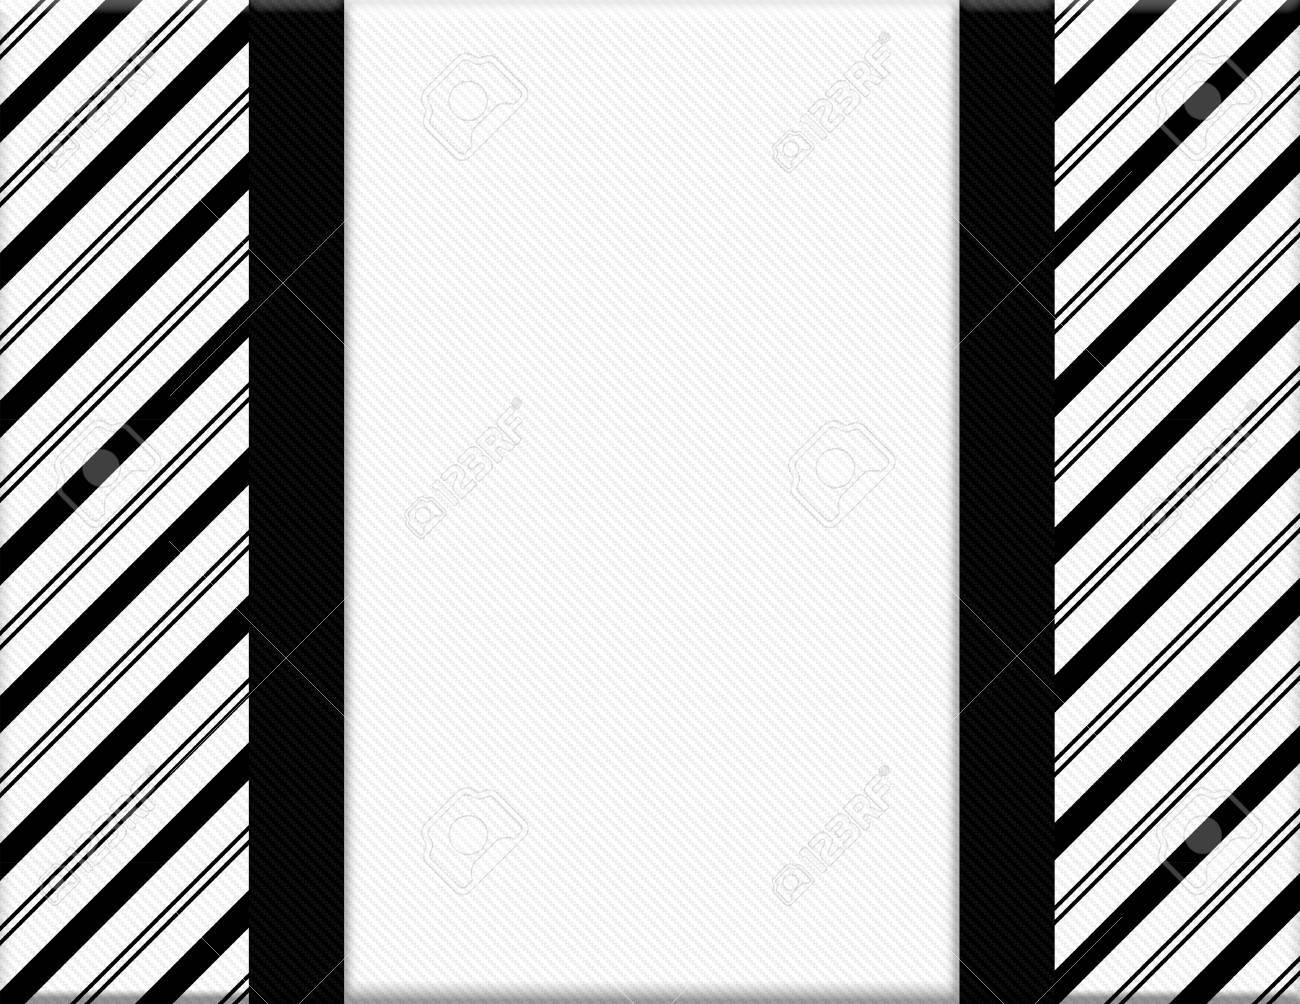 Black And White Striped Frame With Ribbon Background With Center